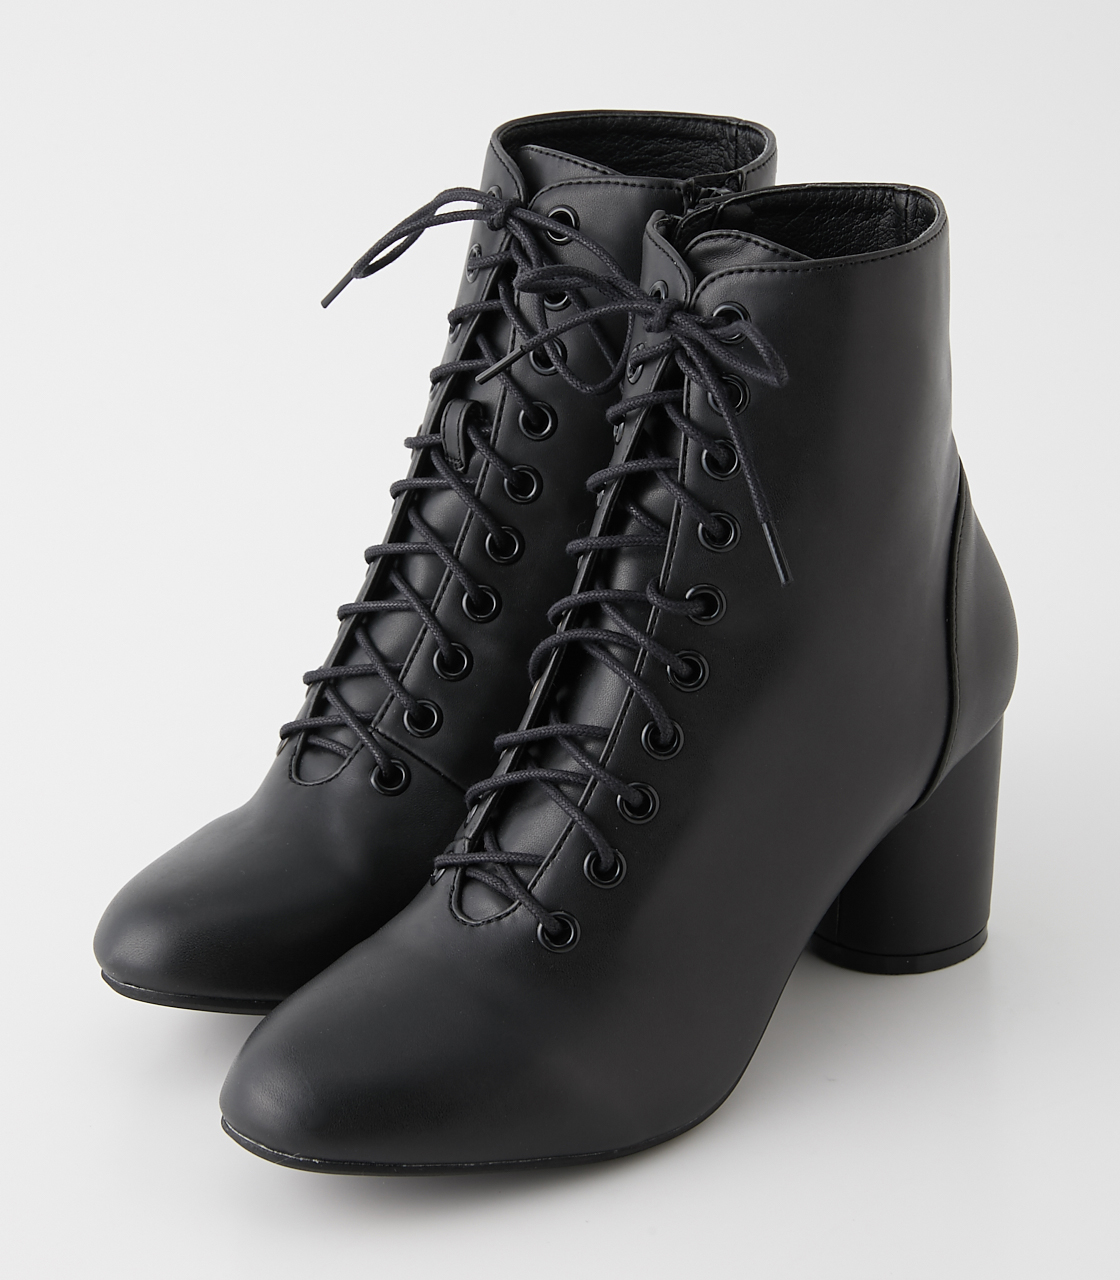 LACE UP HEEL BOOTS/レースアップヒールブーツ 詳細画像 BLK 1